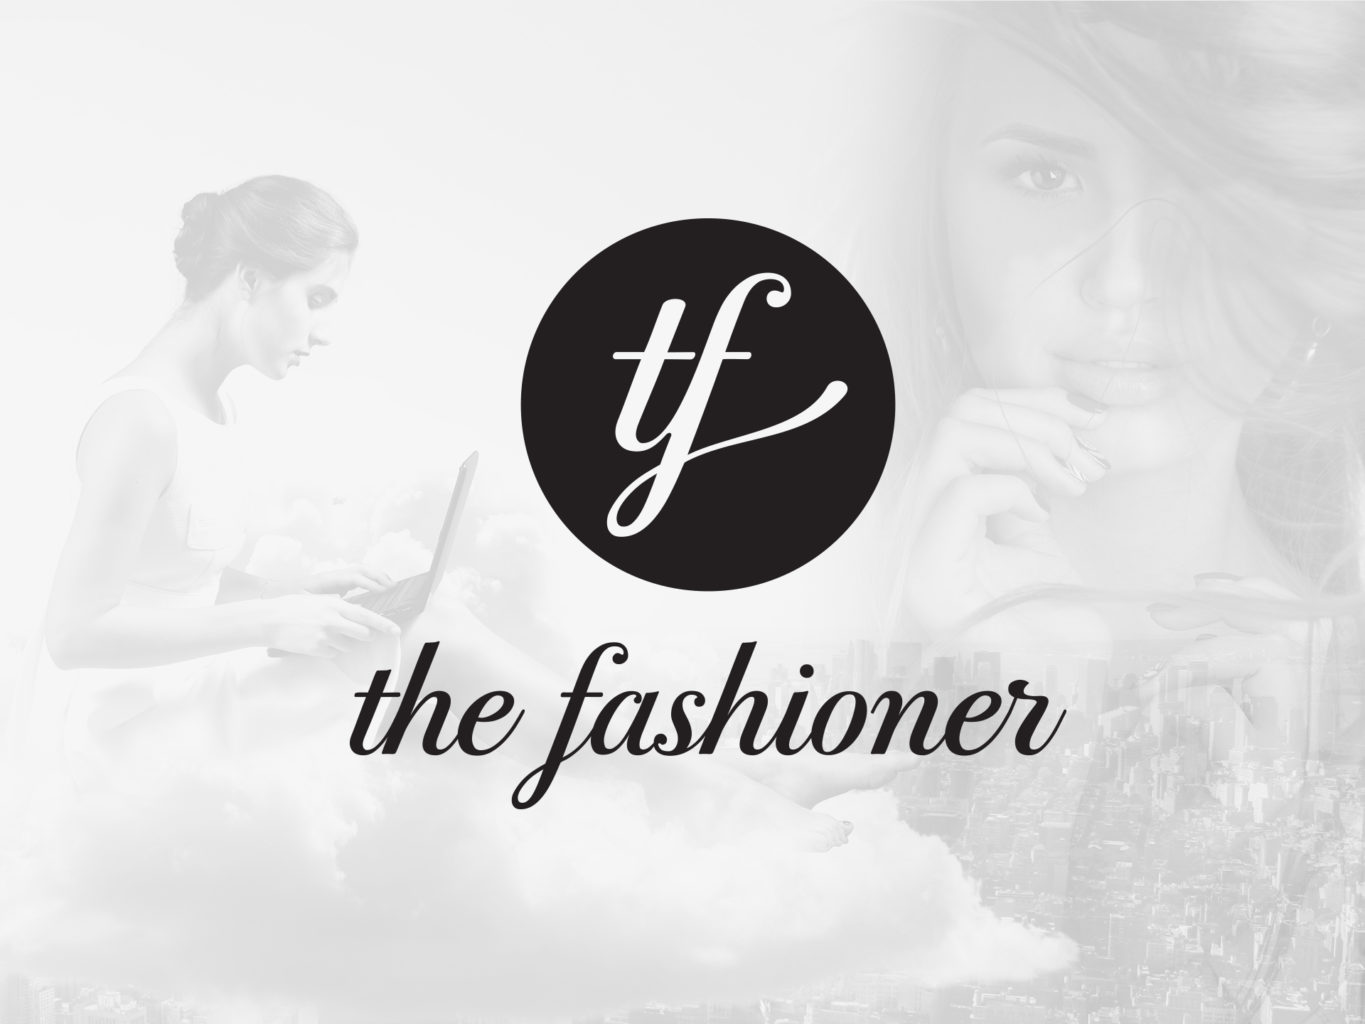 the fashioner logo